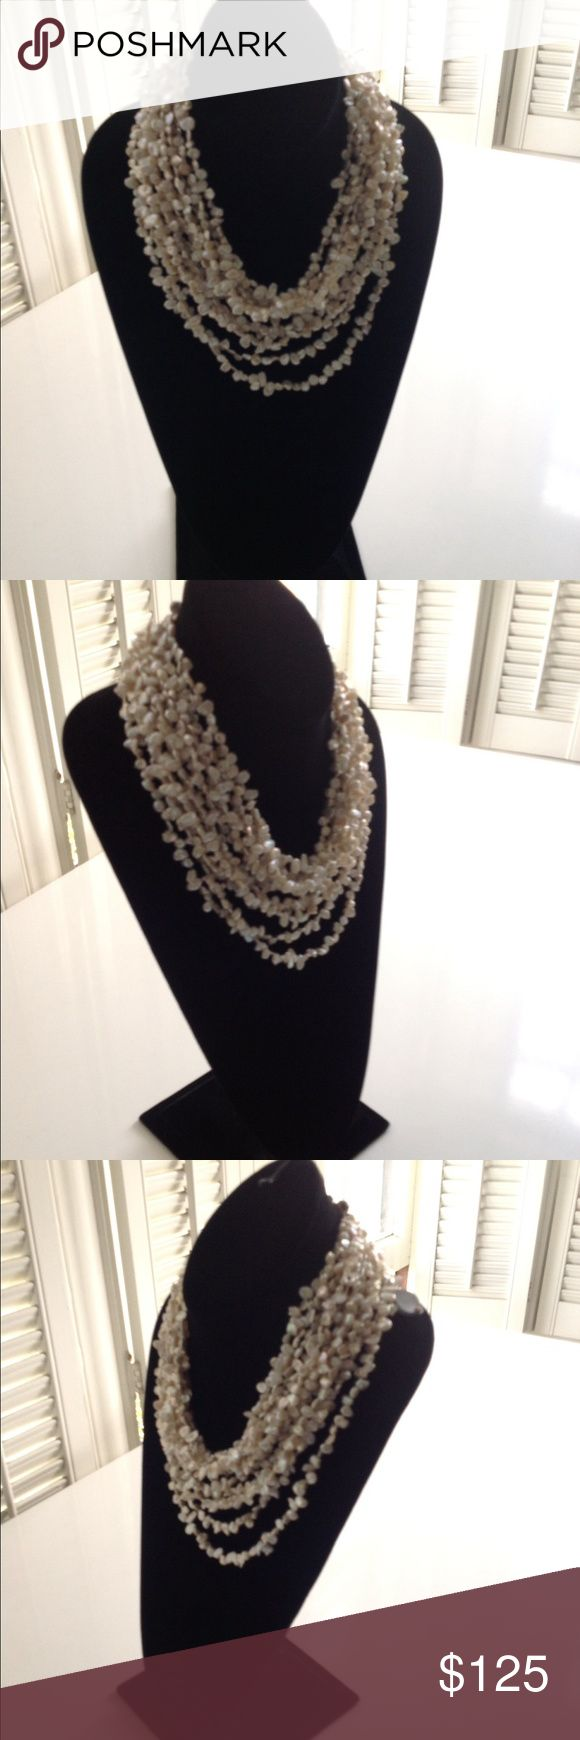 Peal necklace Beautiful real pearl necklace Jewelry Necklaces